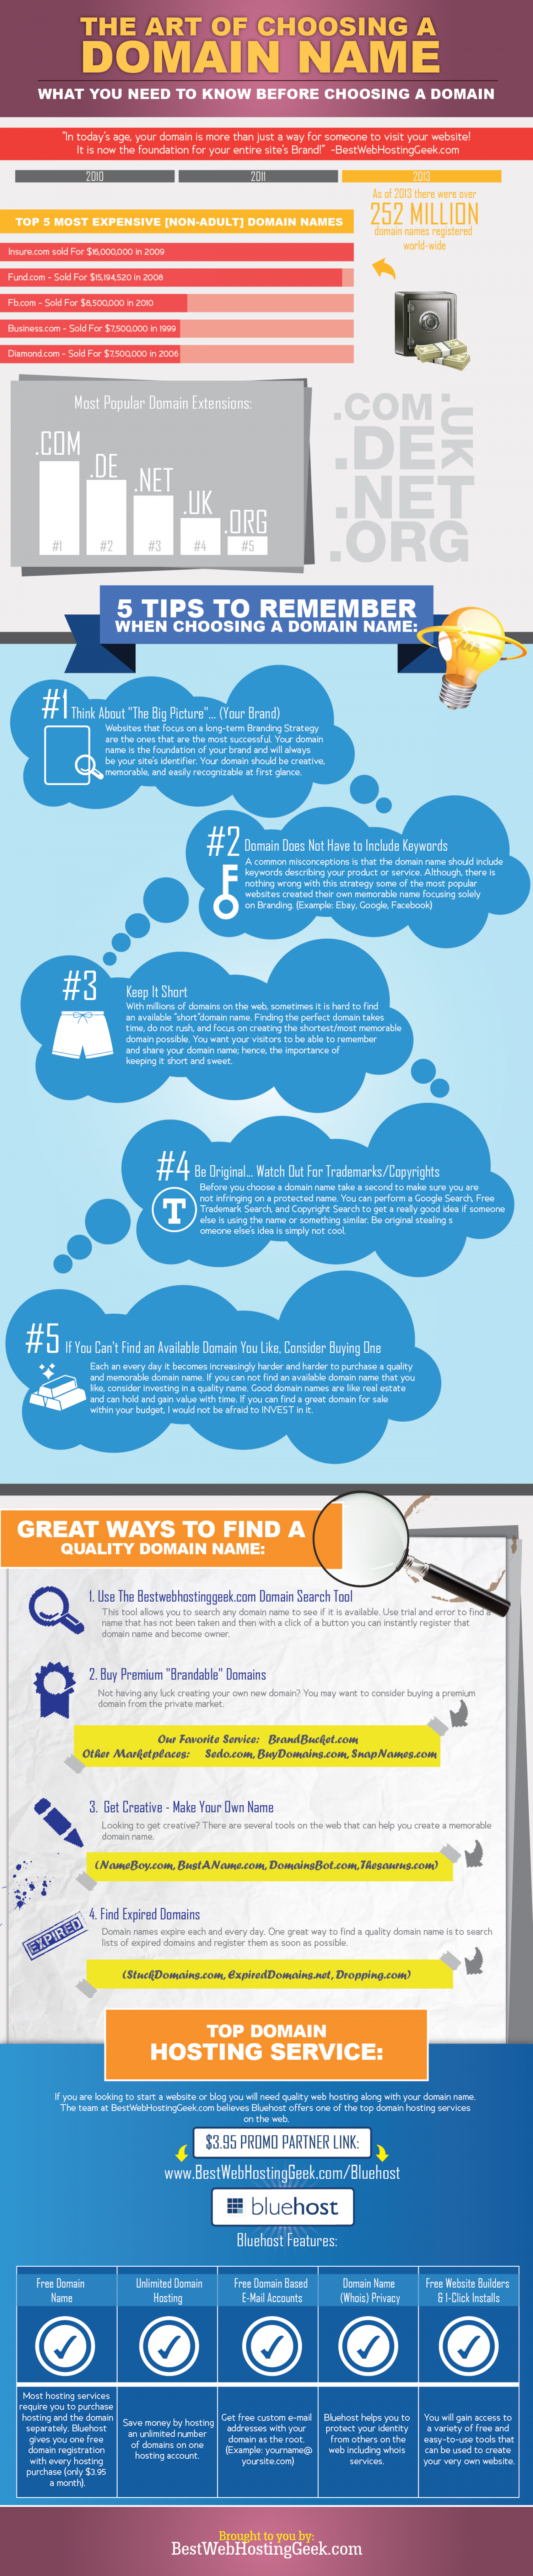 Art of Choosing a Domain Name Infographic